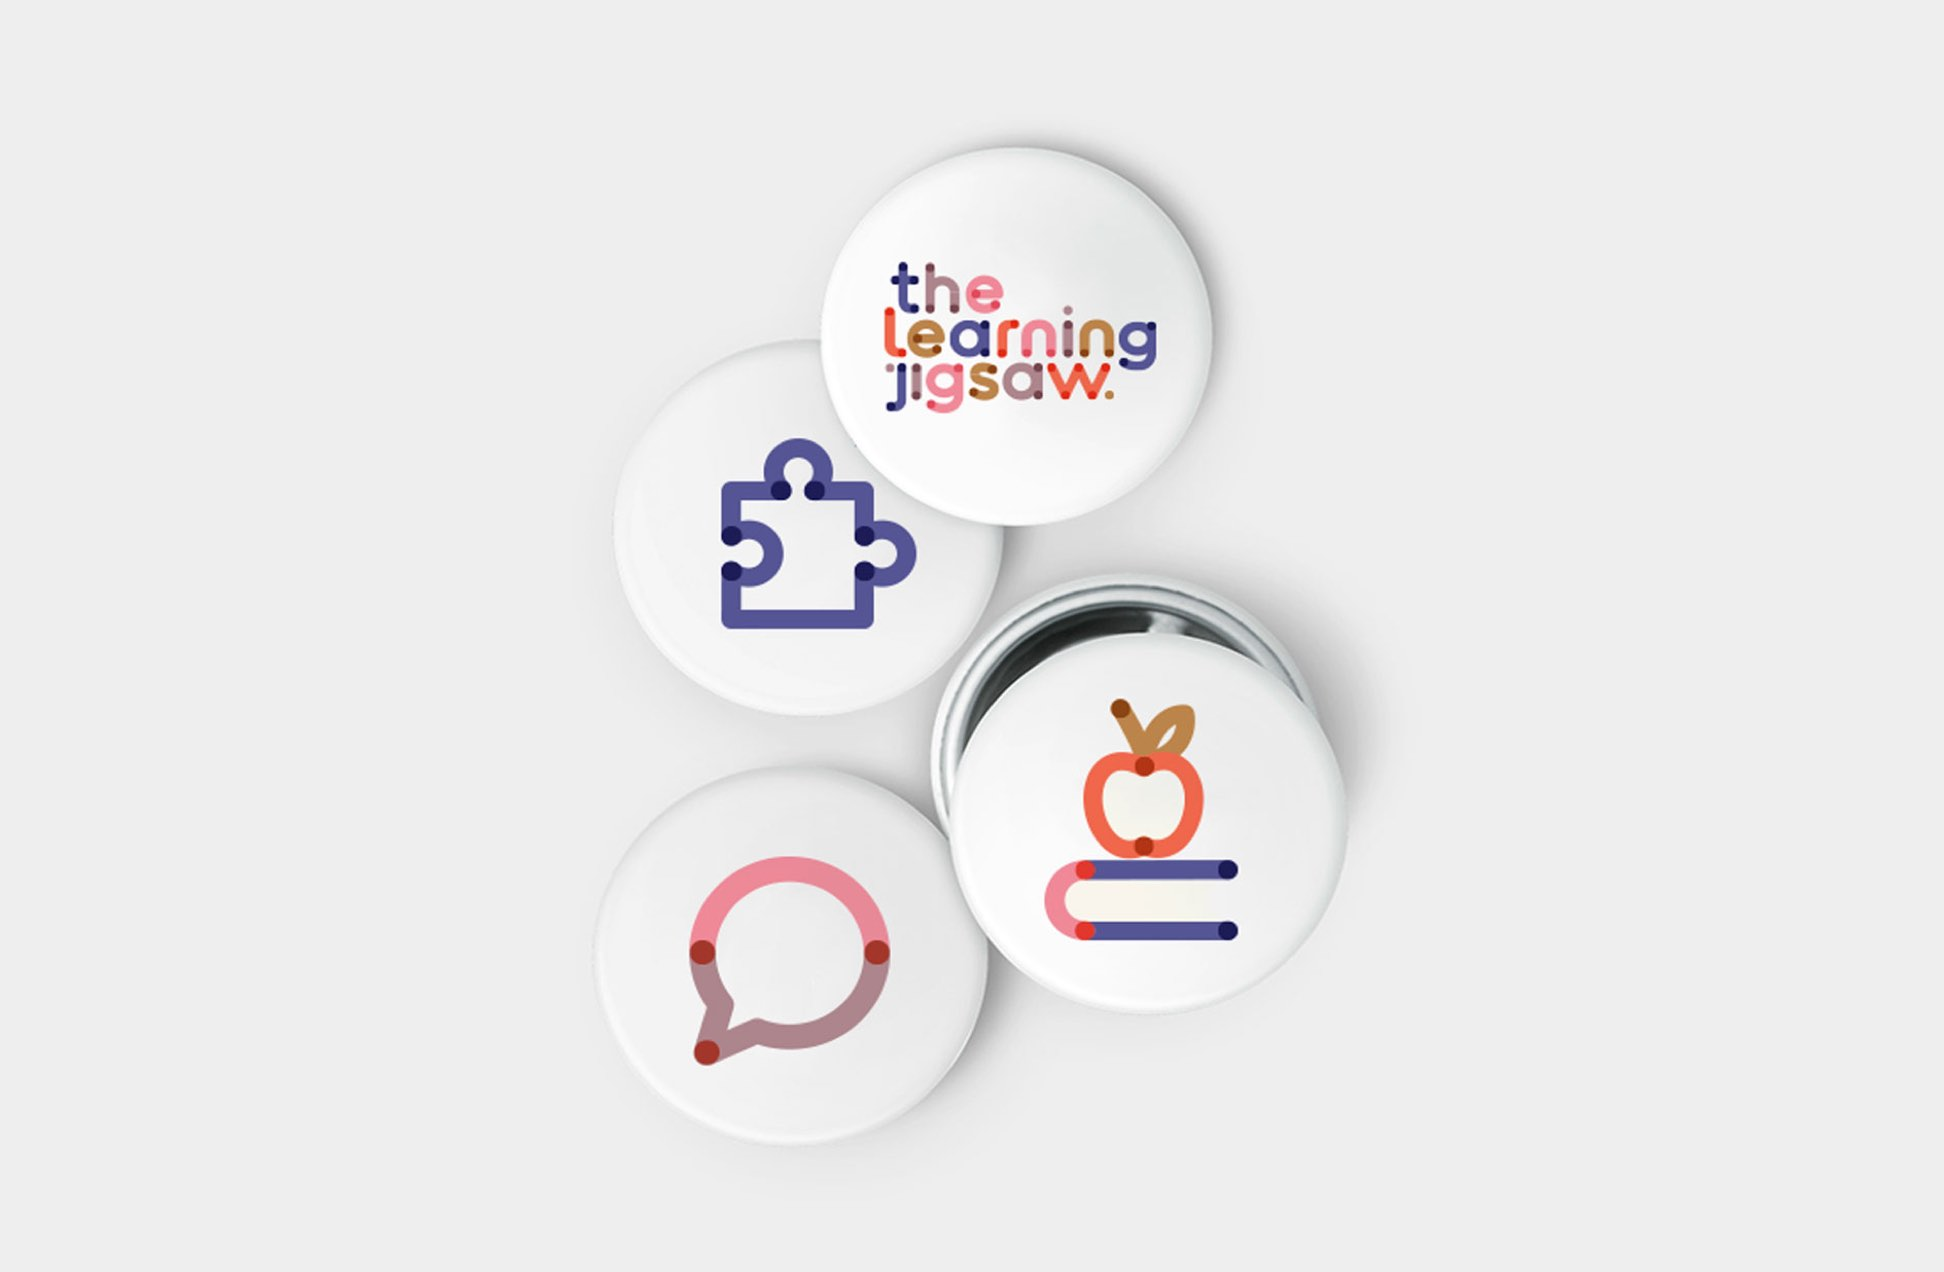 The Learning Jigsaw badges